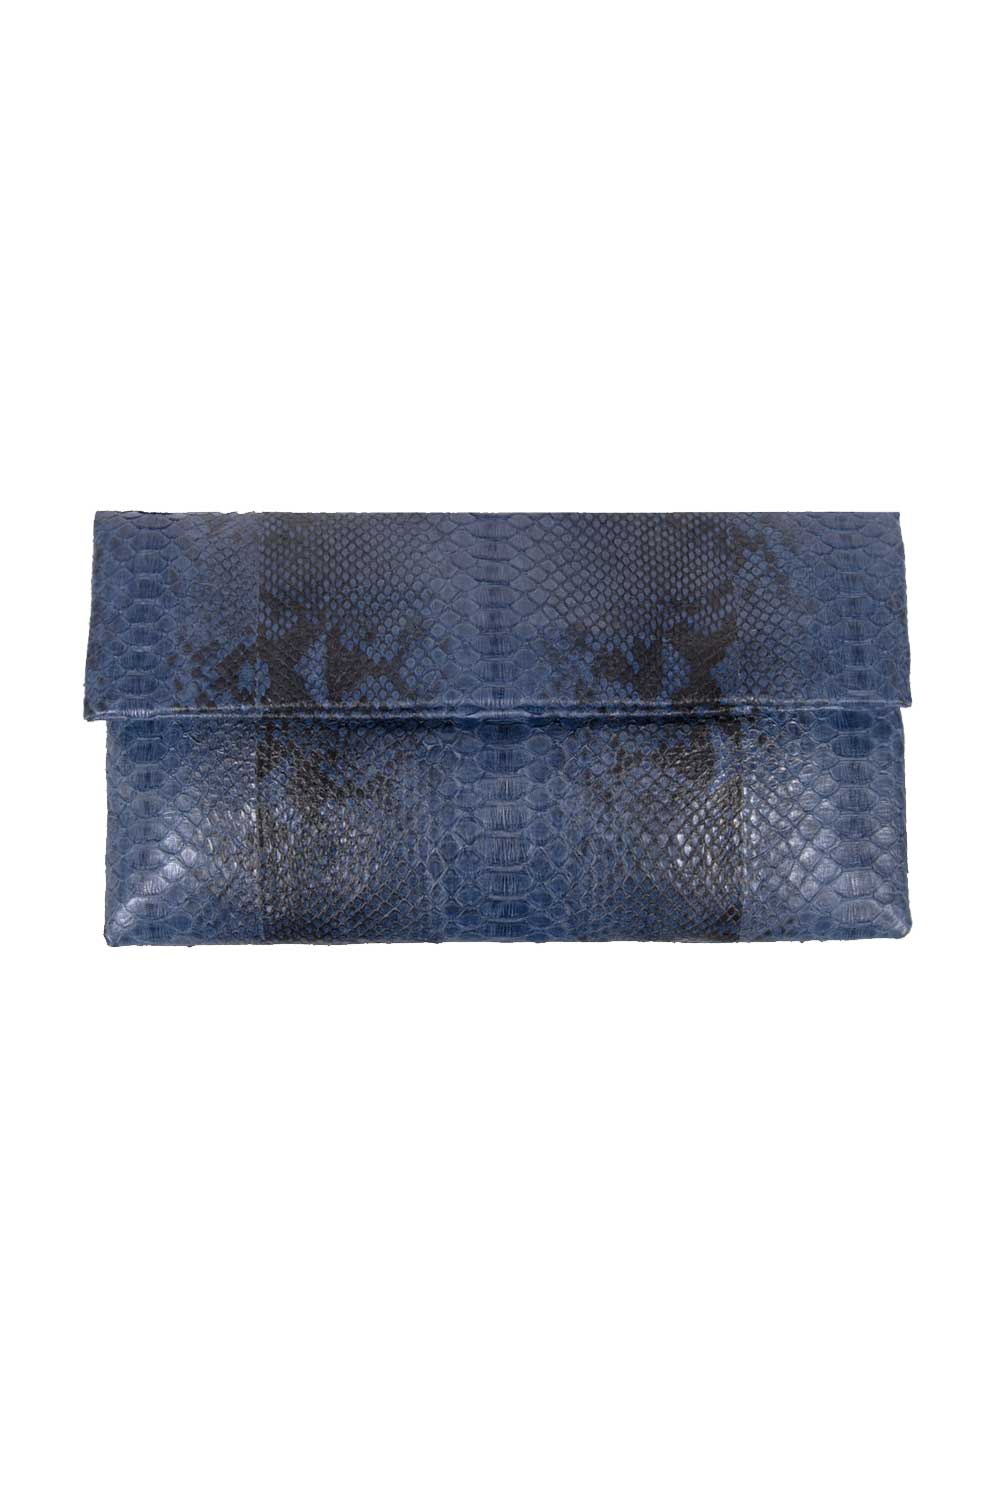 Primary New York Python Prime Clutch Steel Blue